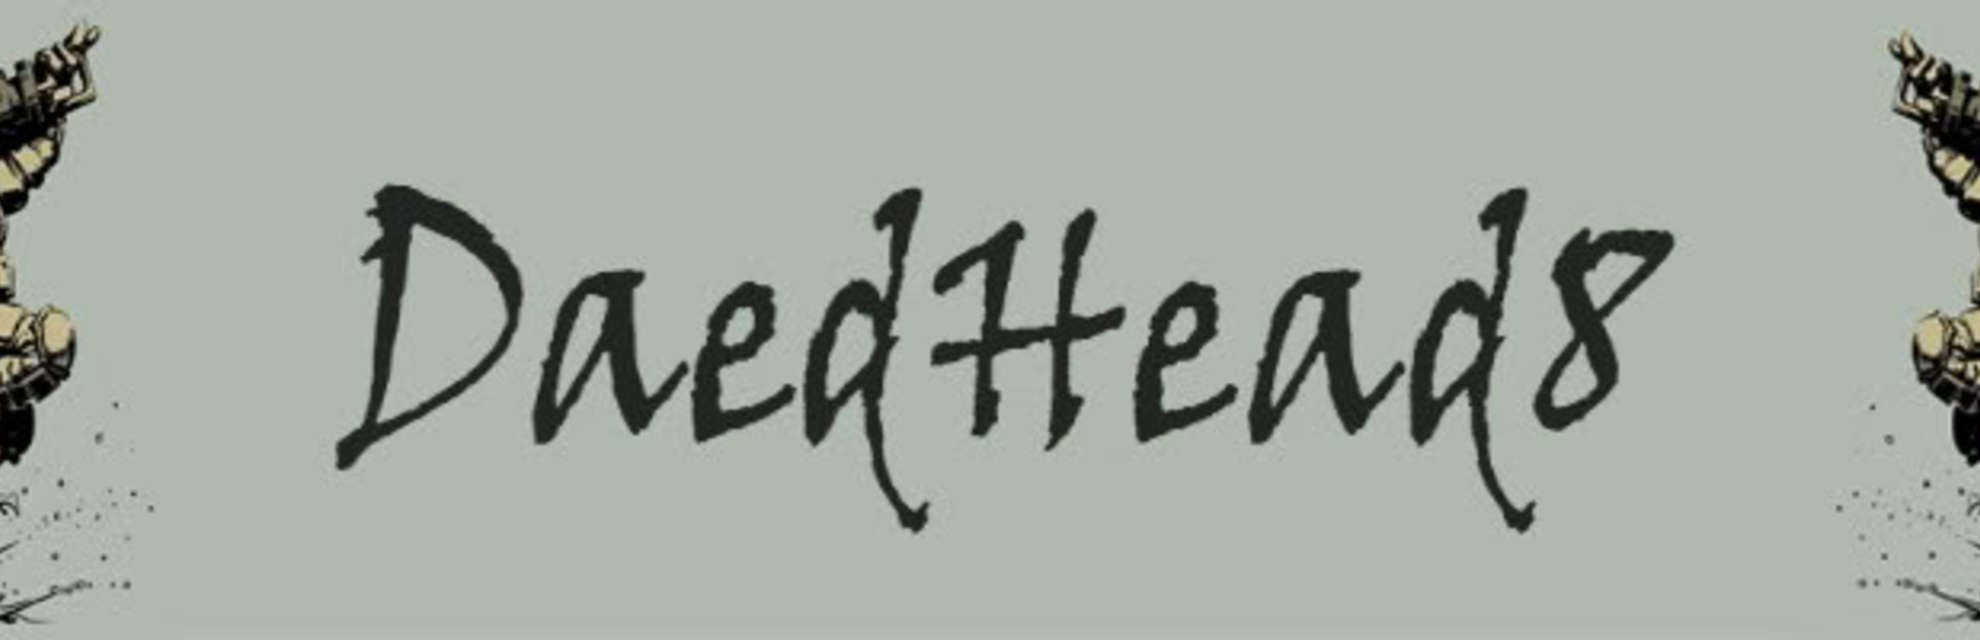 DaedHead8 blog header photo